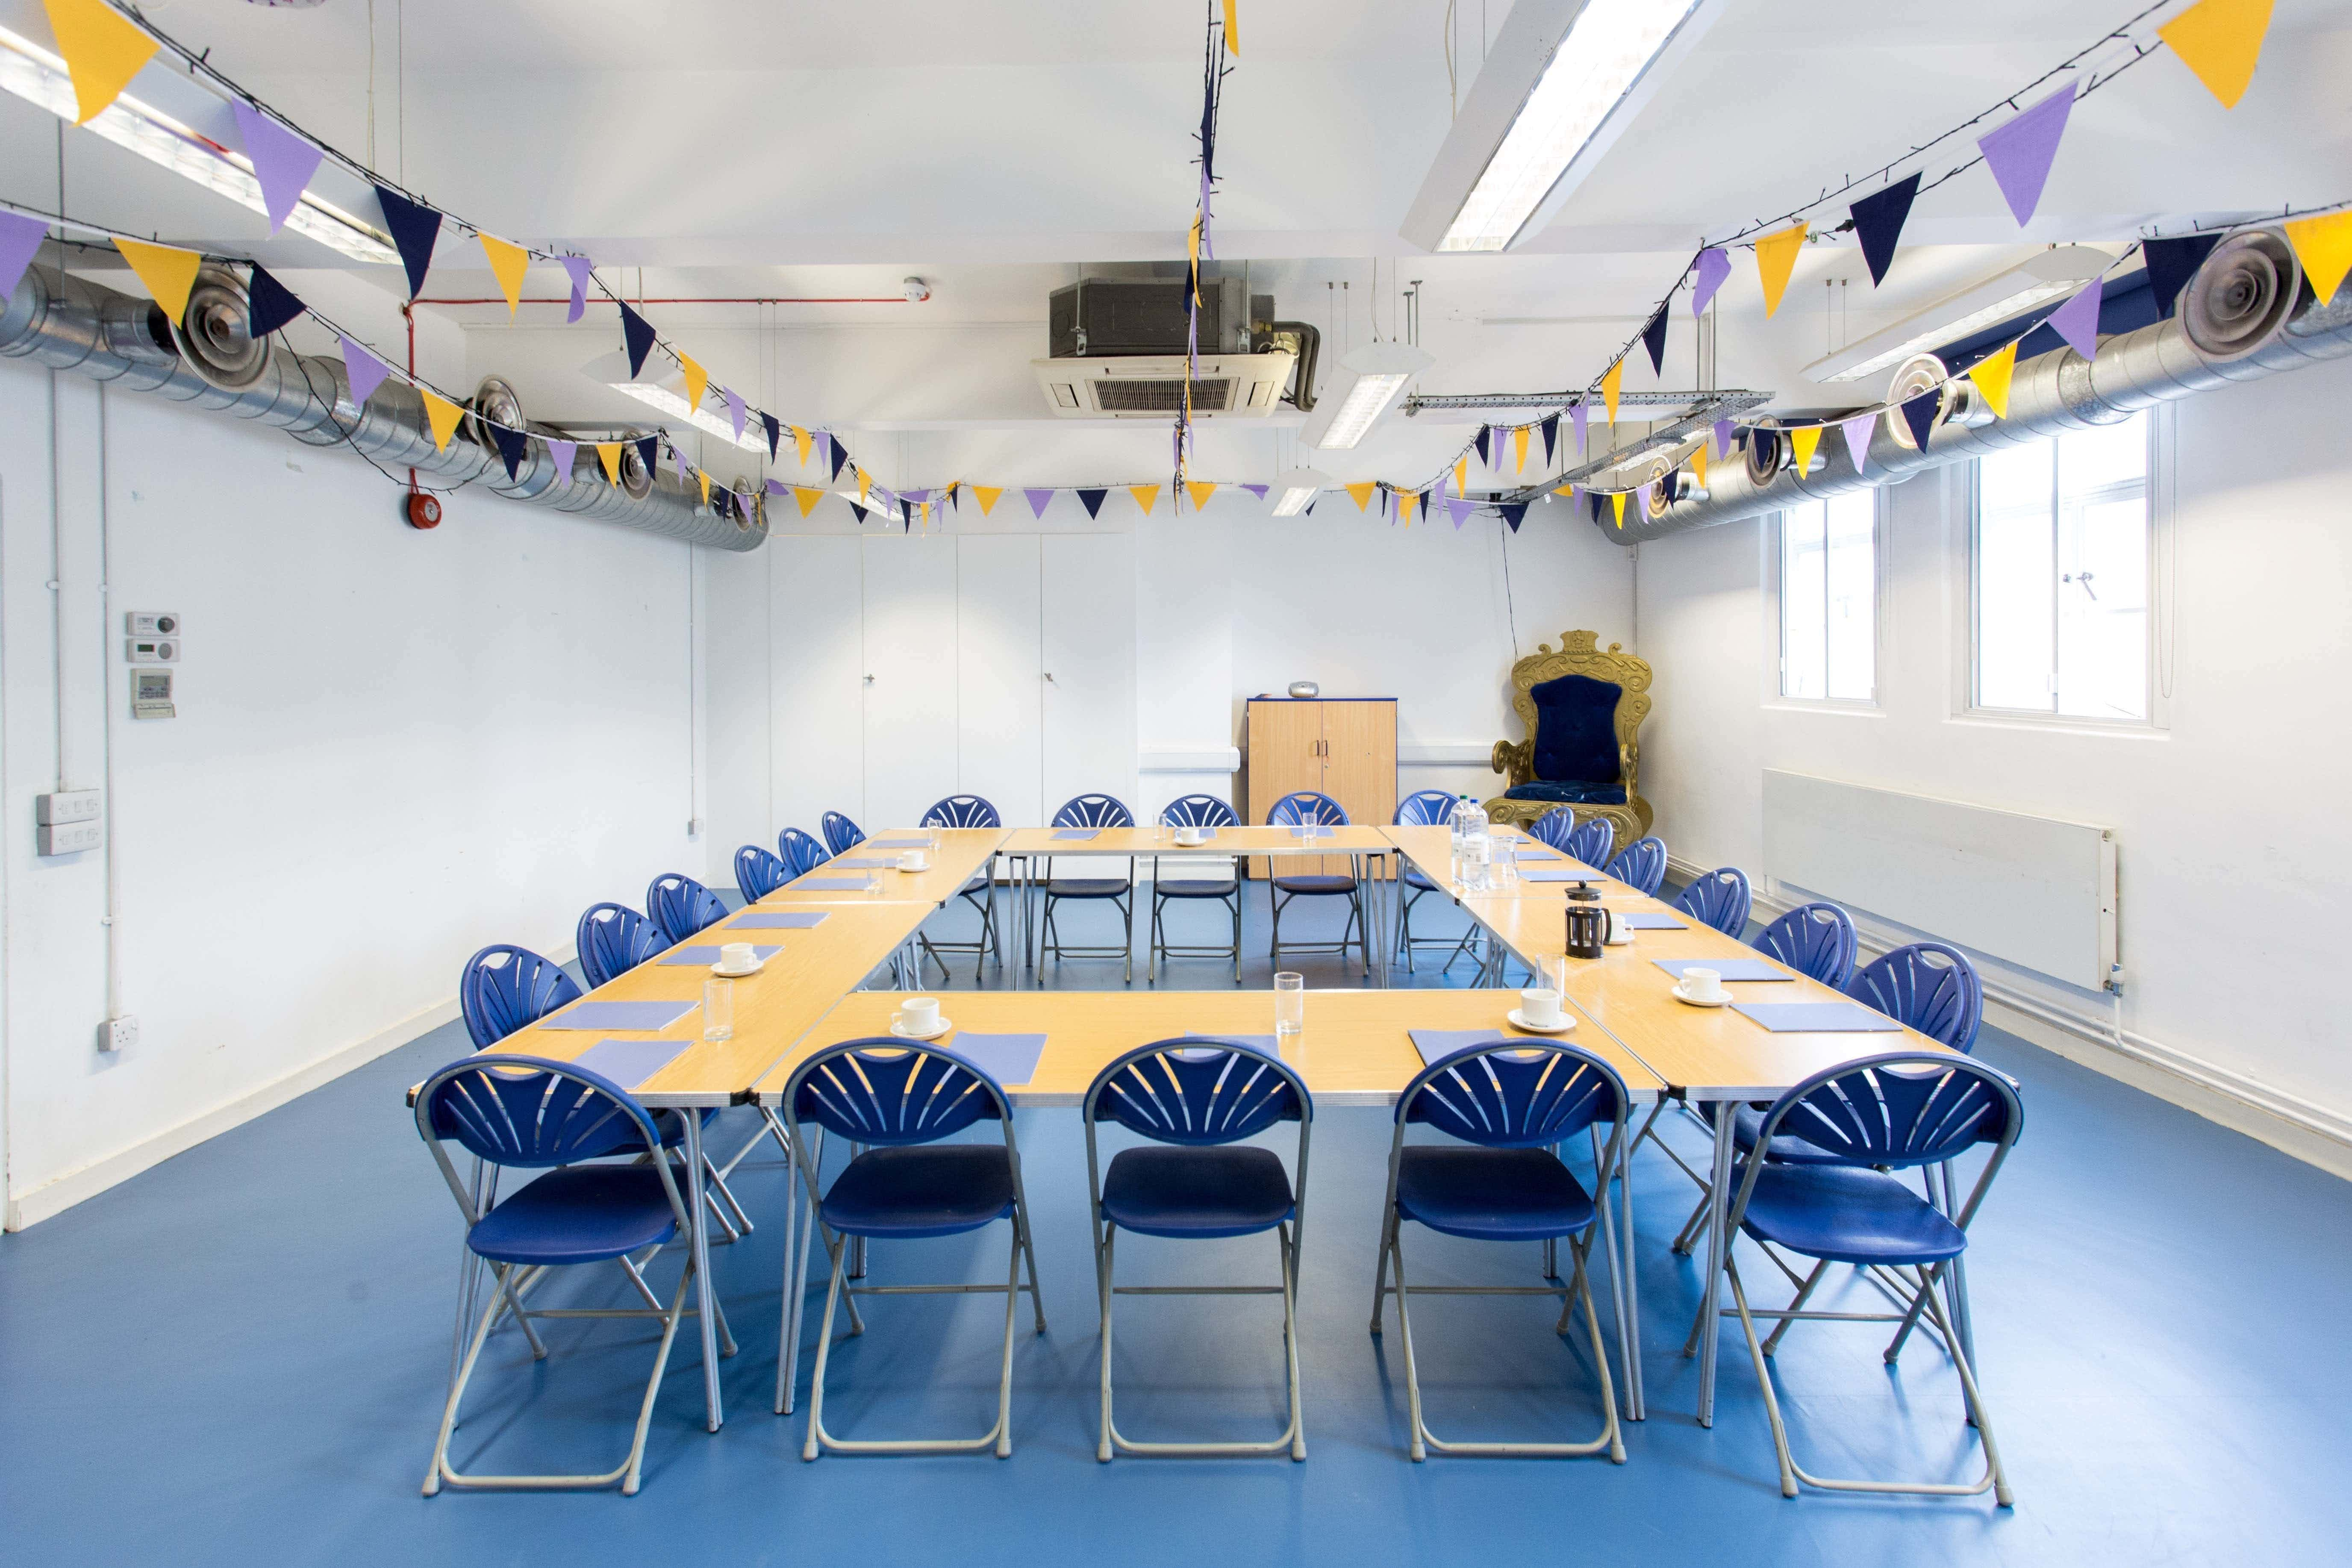 Meeting Room 2.1, Discover Children's Story Centre